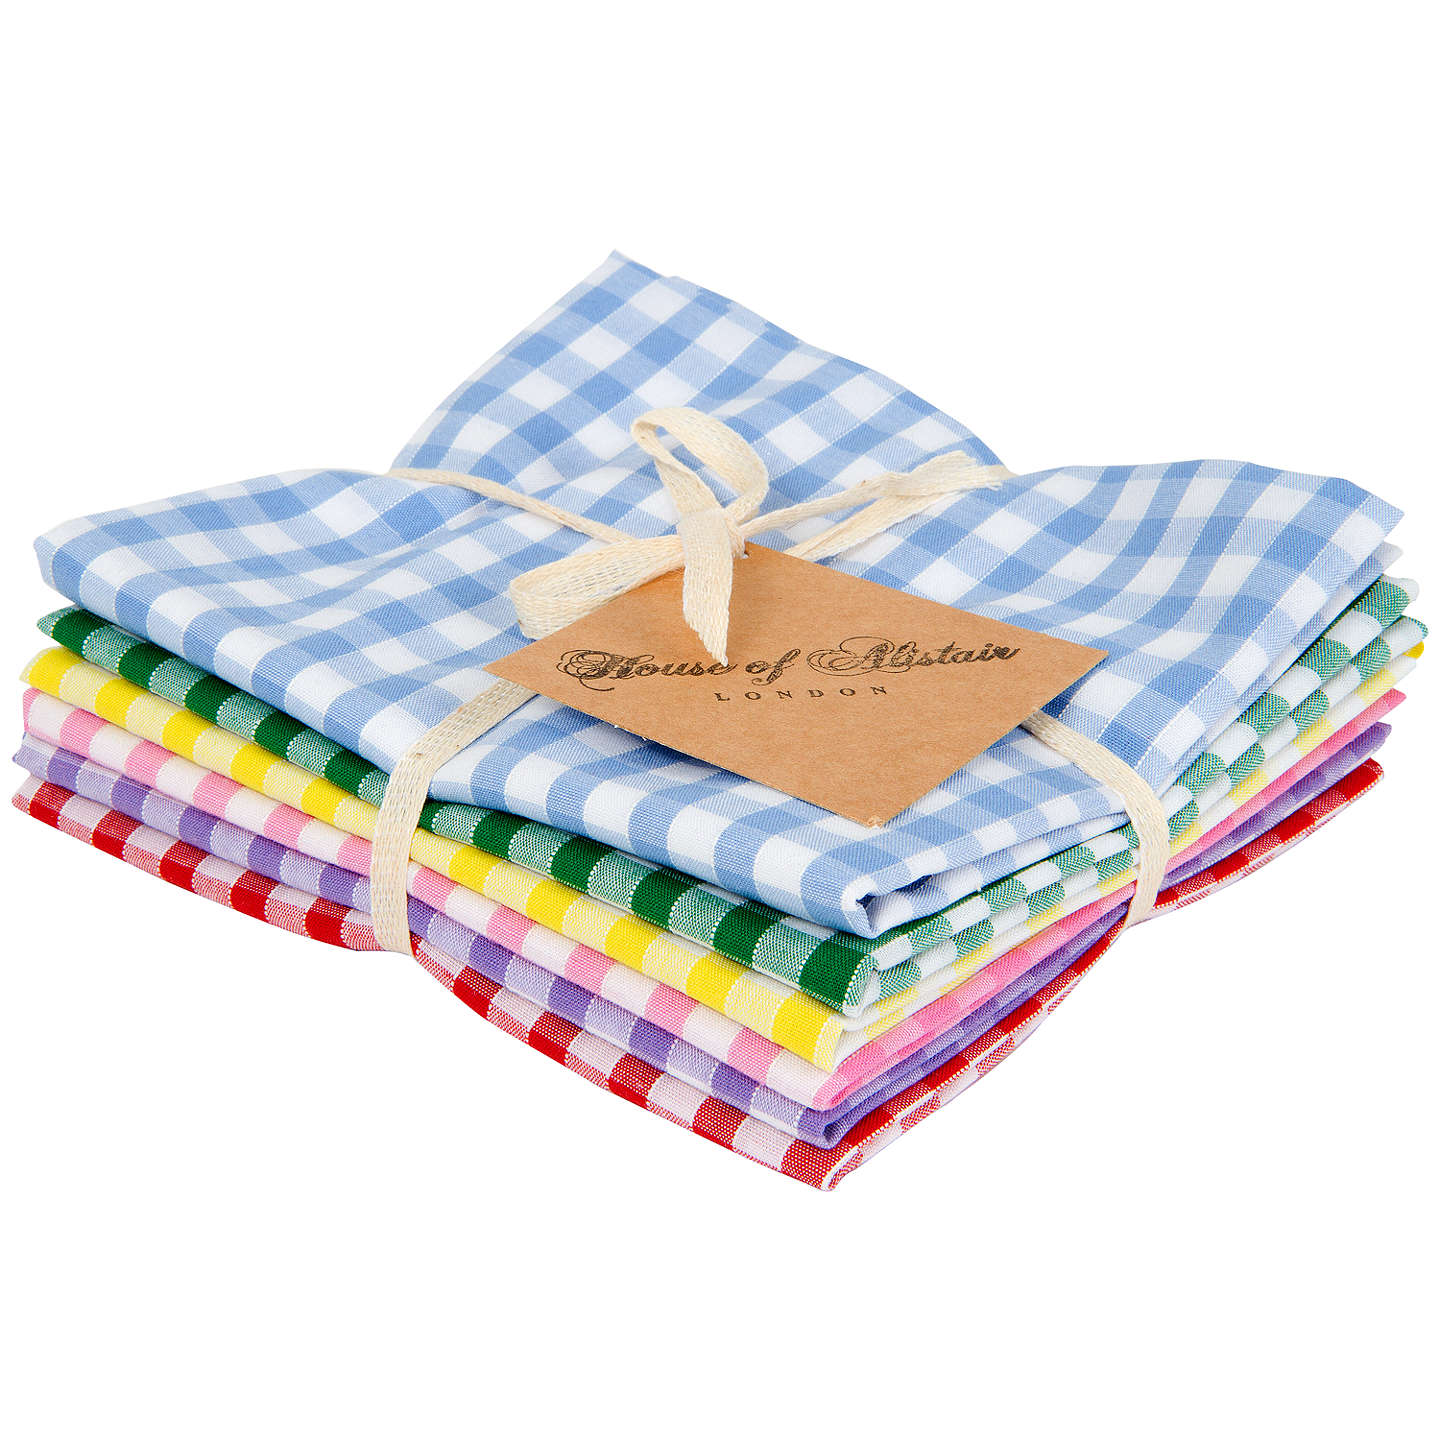 BuyHouse of Alistair Gingham Mix Fat Quarter Fabrics, Pack of 6 Online at johnlewis.com